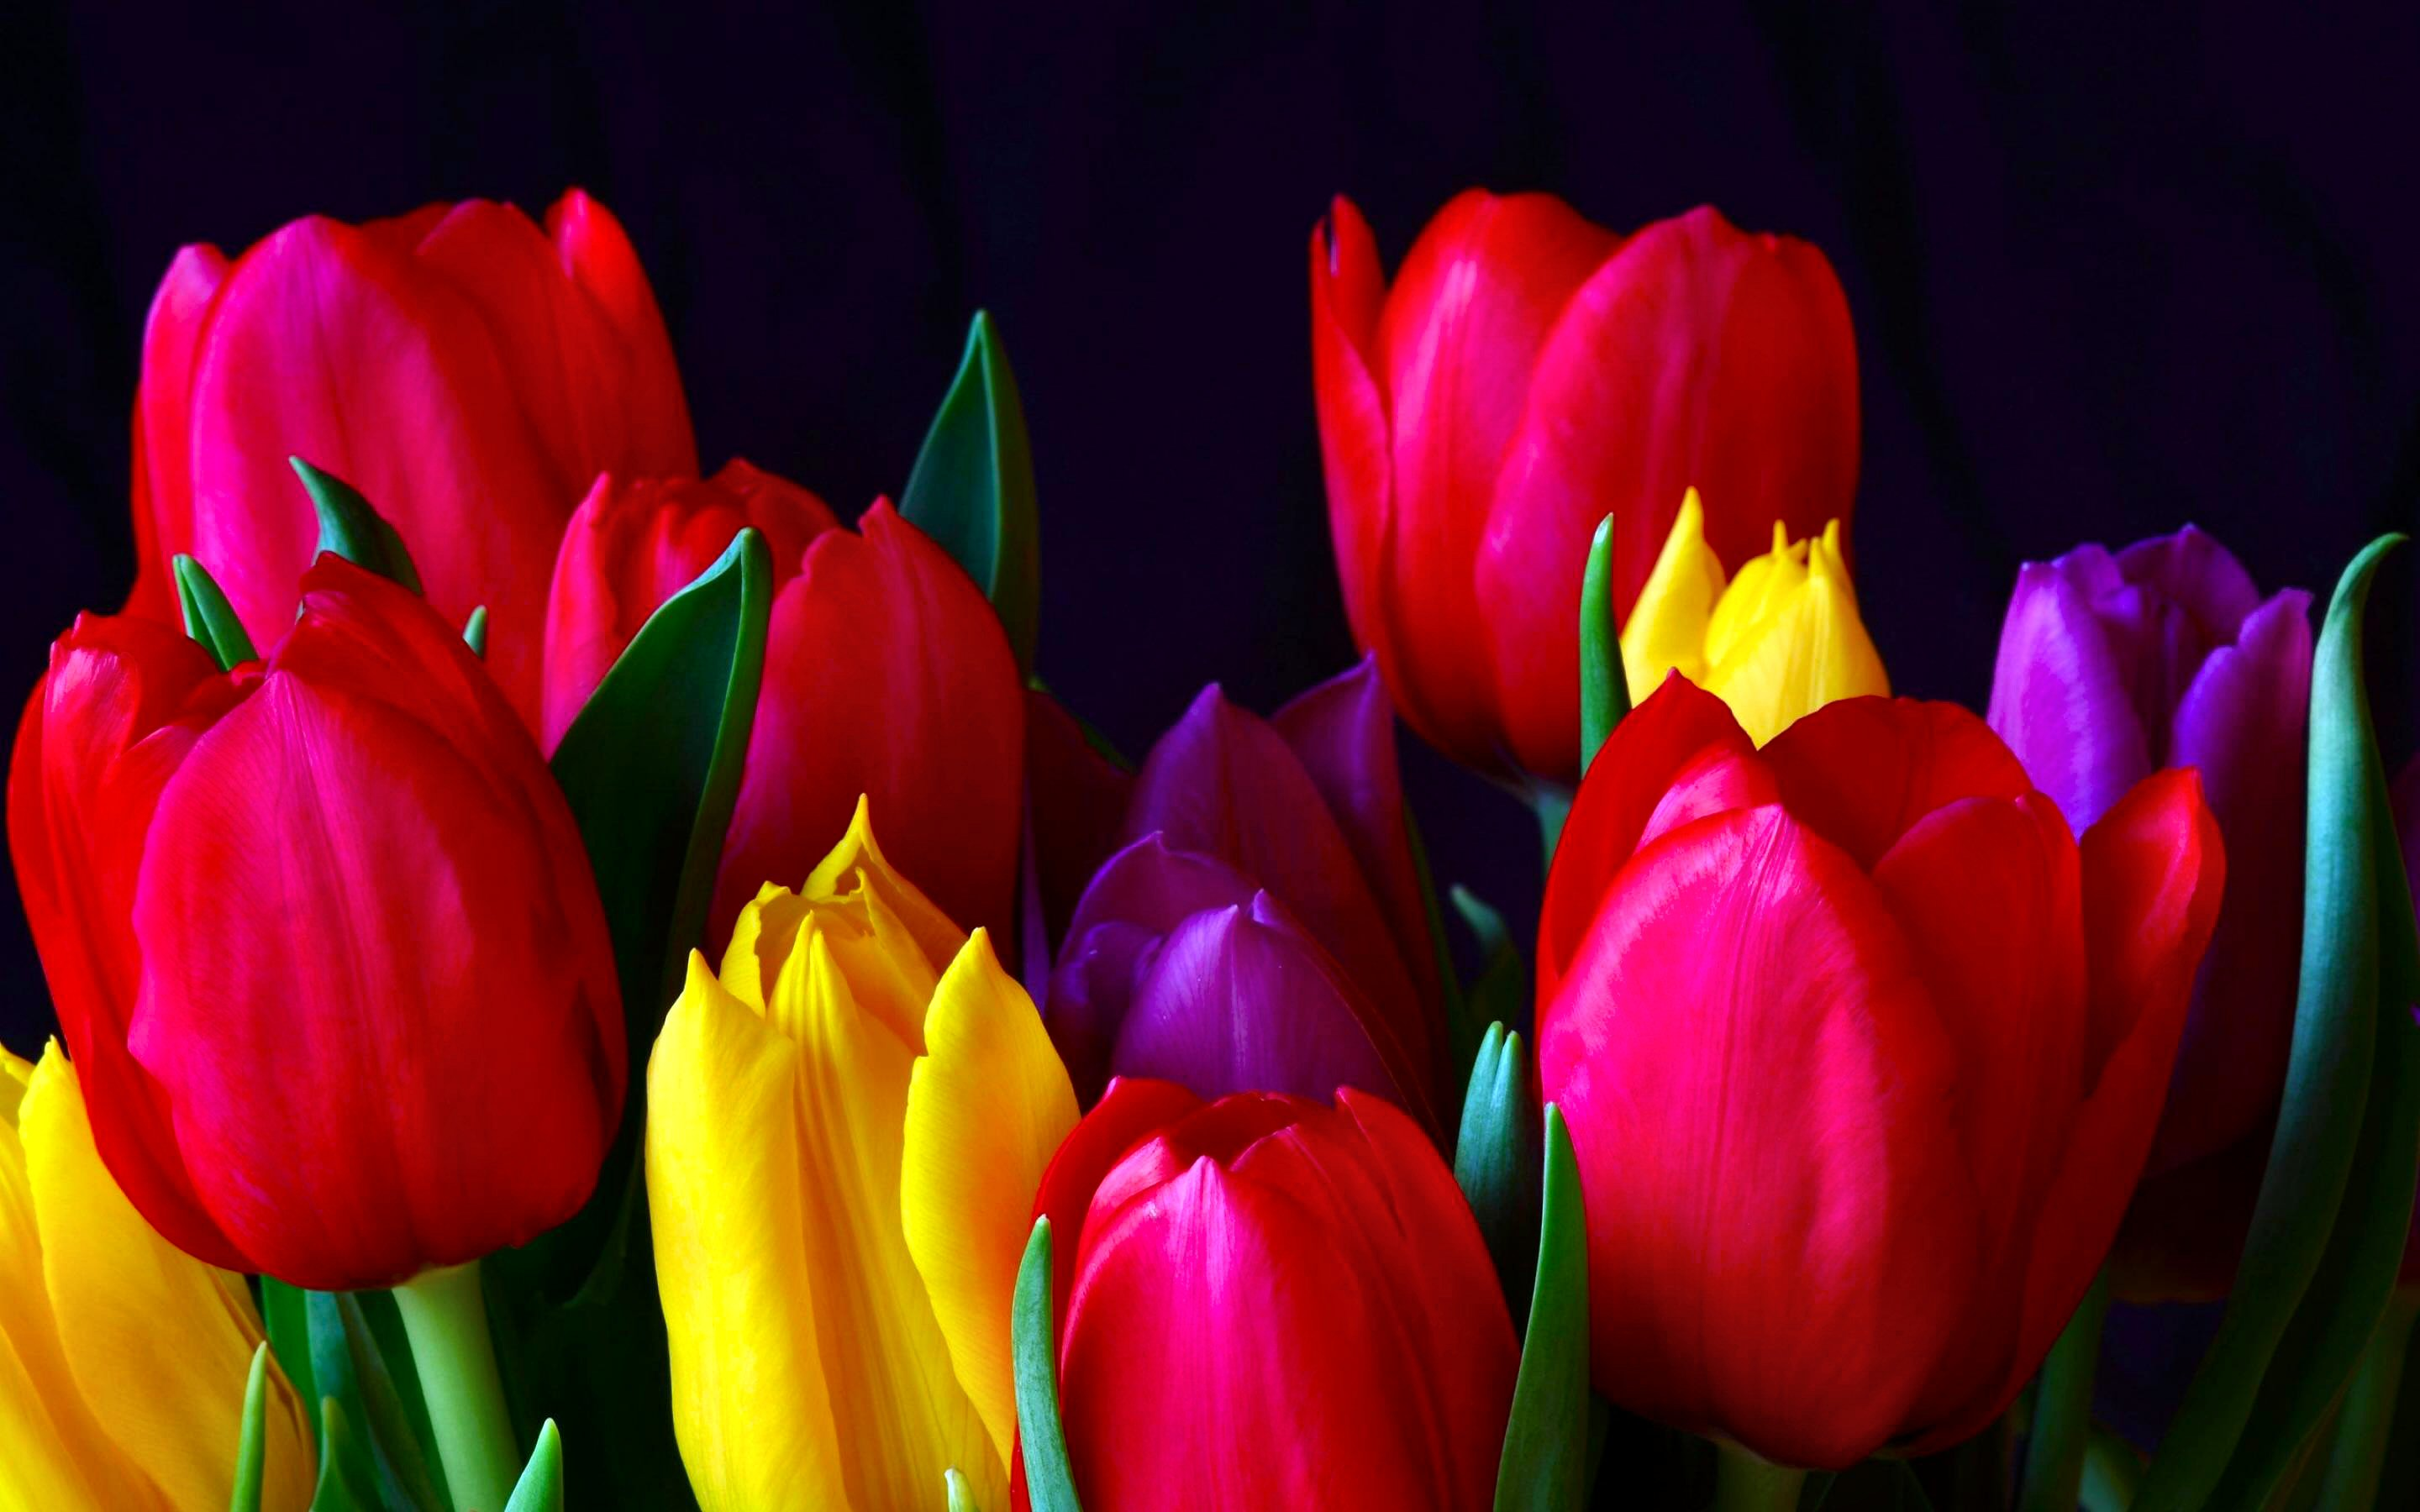 colorful tulip flowers - photo #40